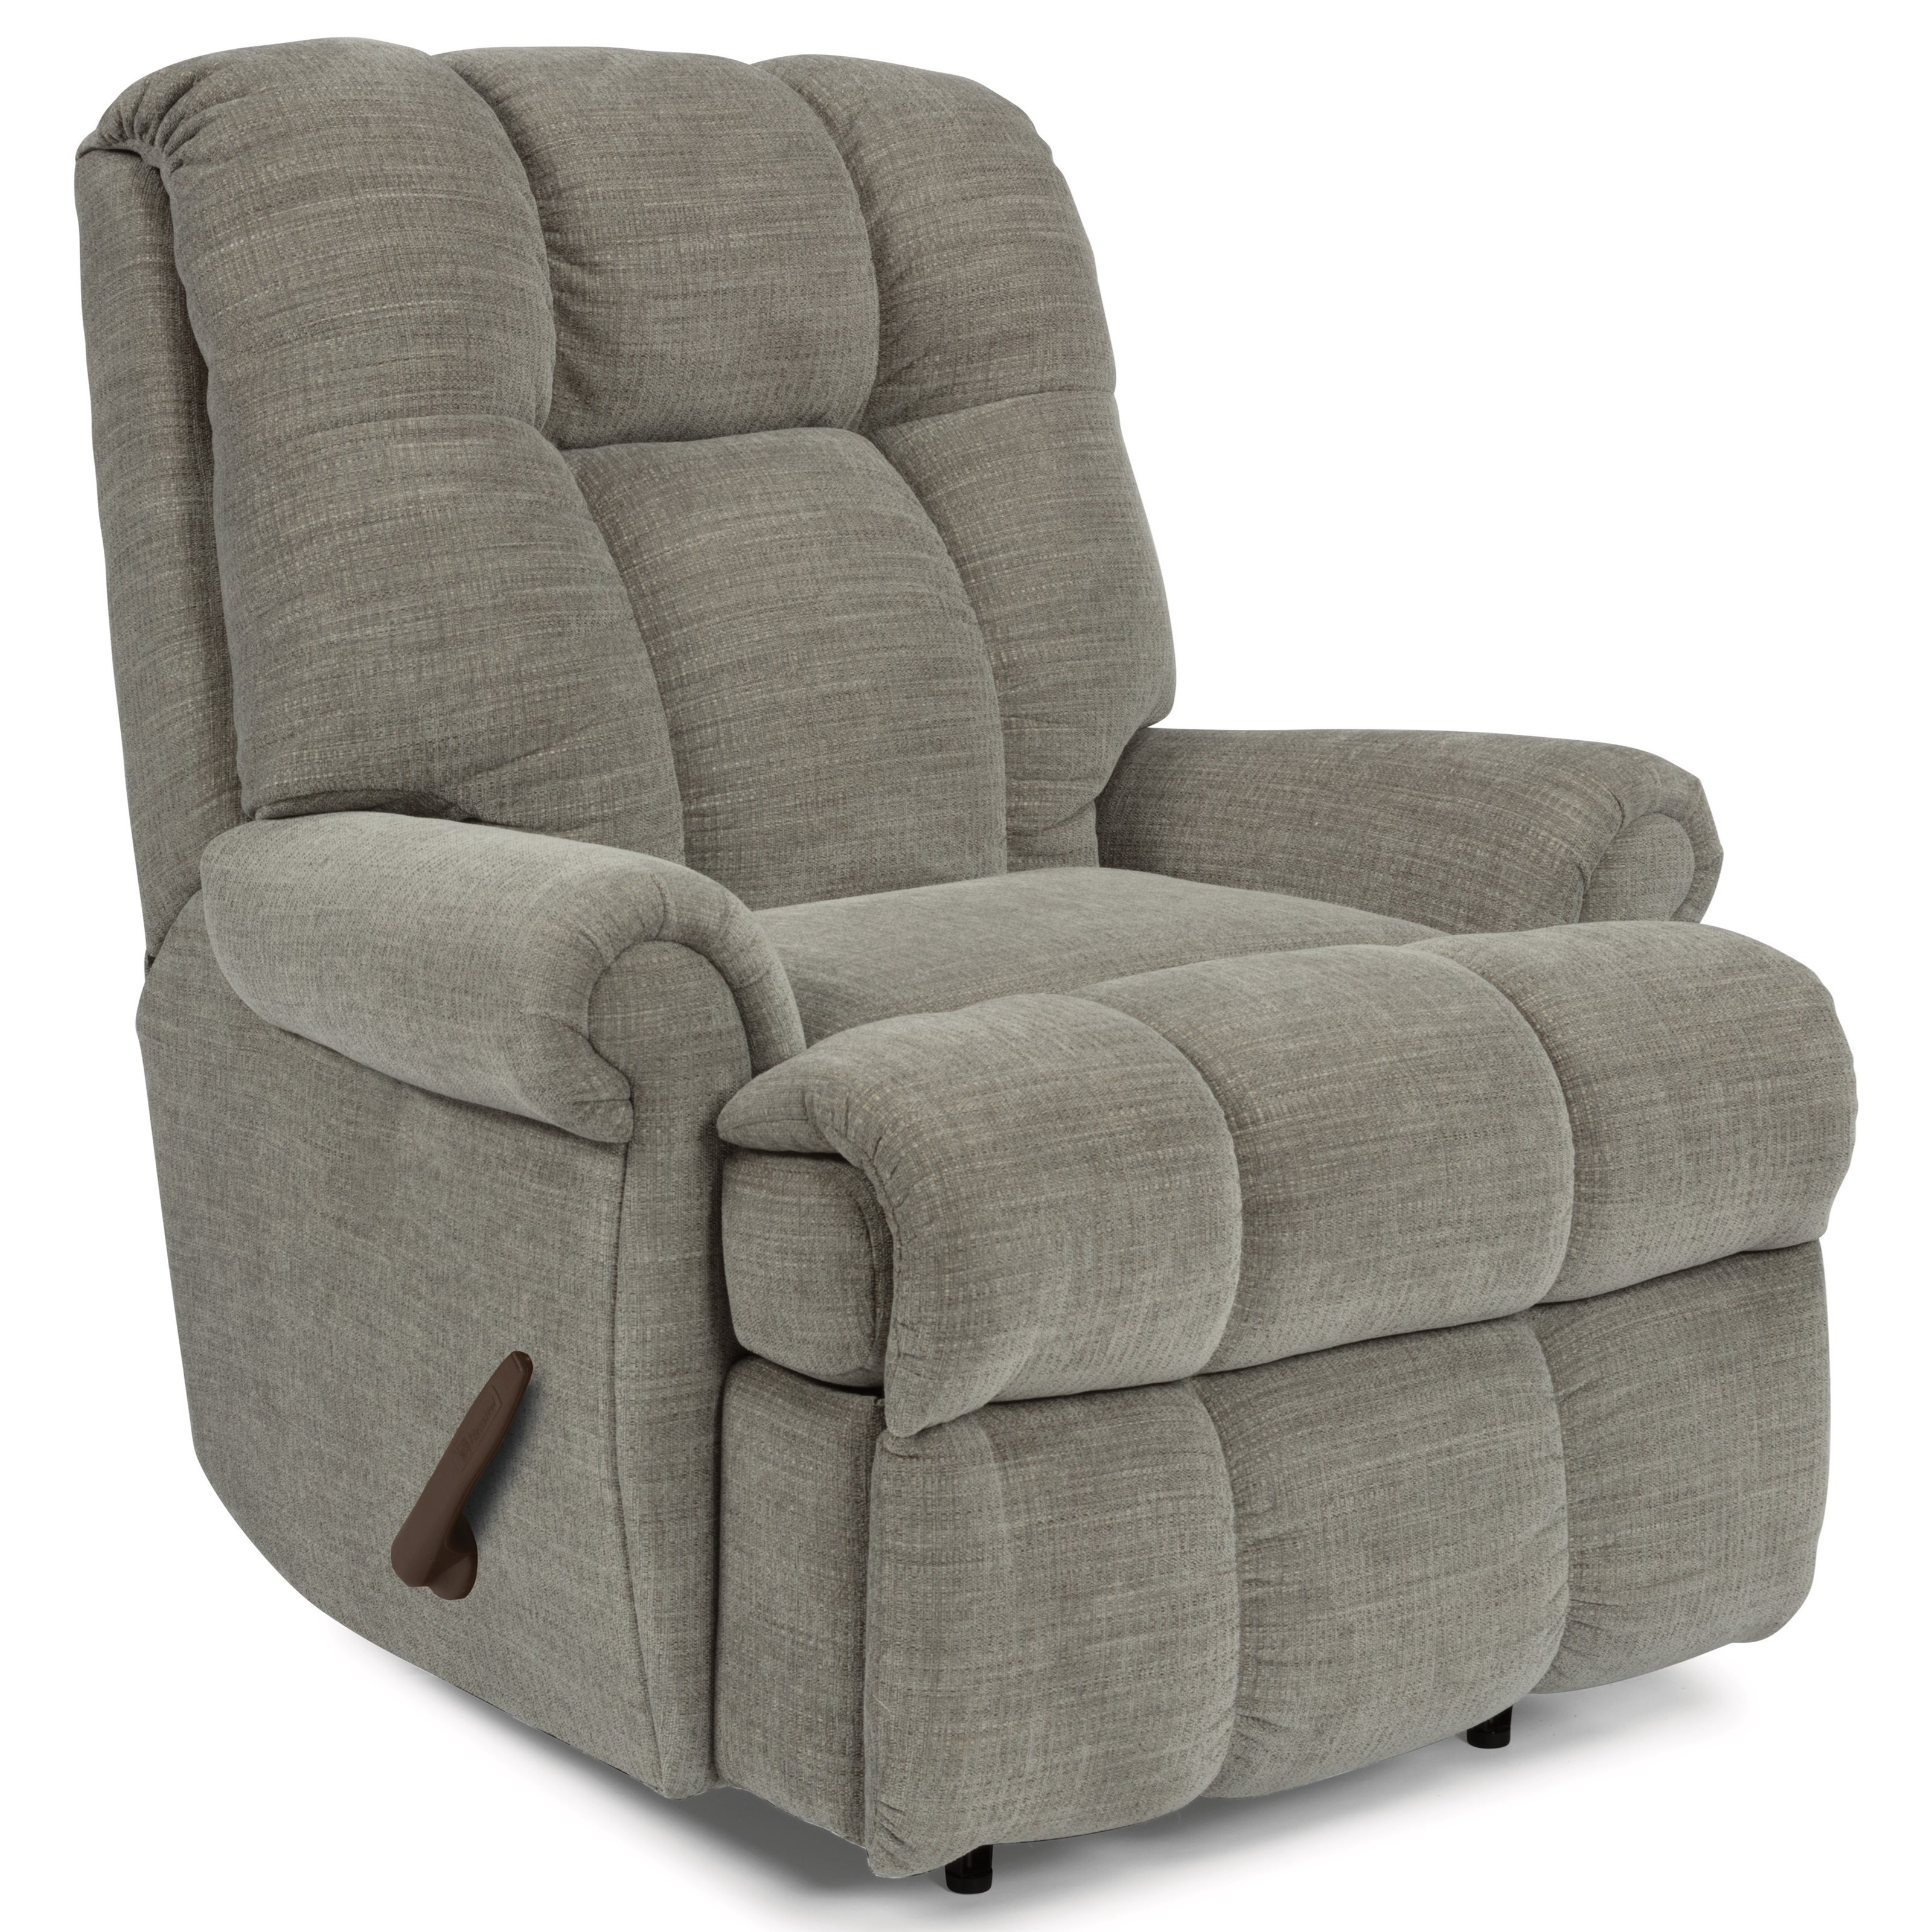 Accents Large Recliner by Flexsteel at A1 Furniture & Mattress